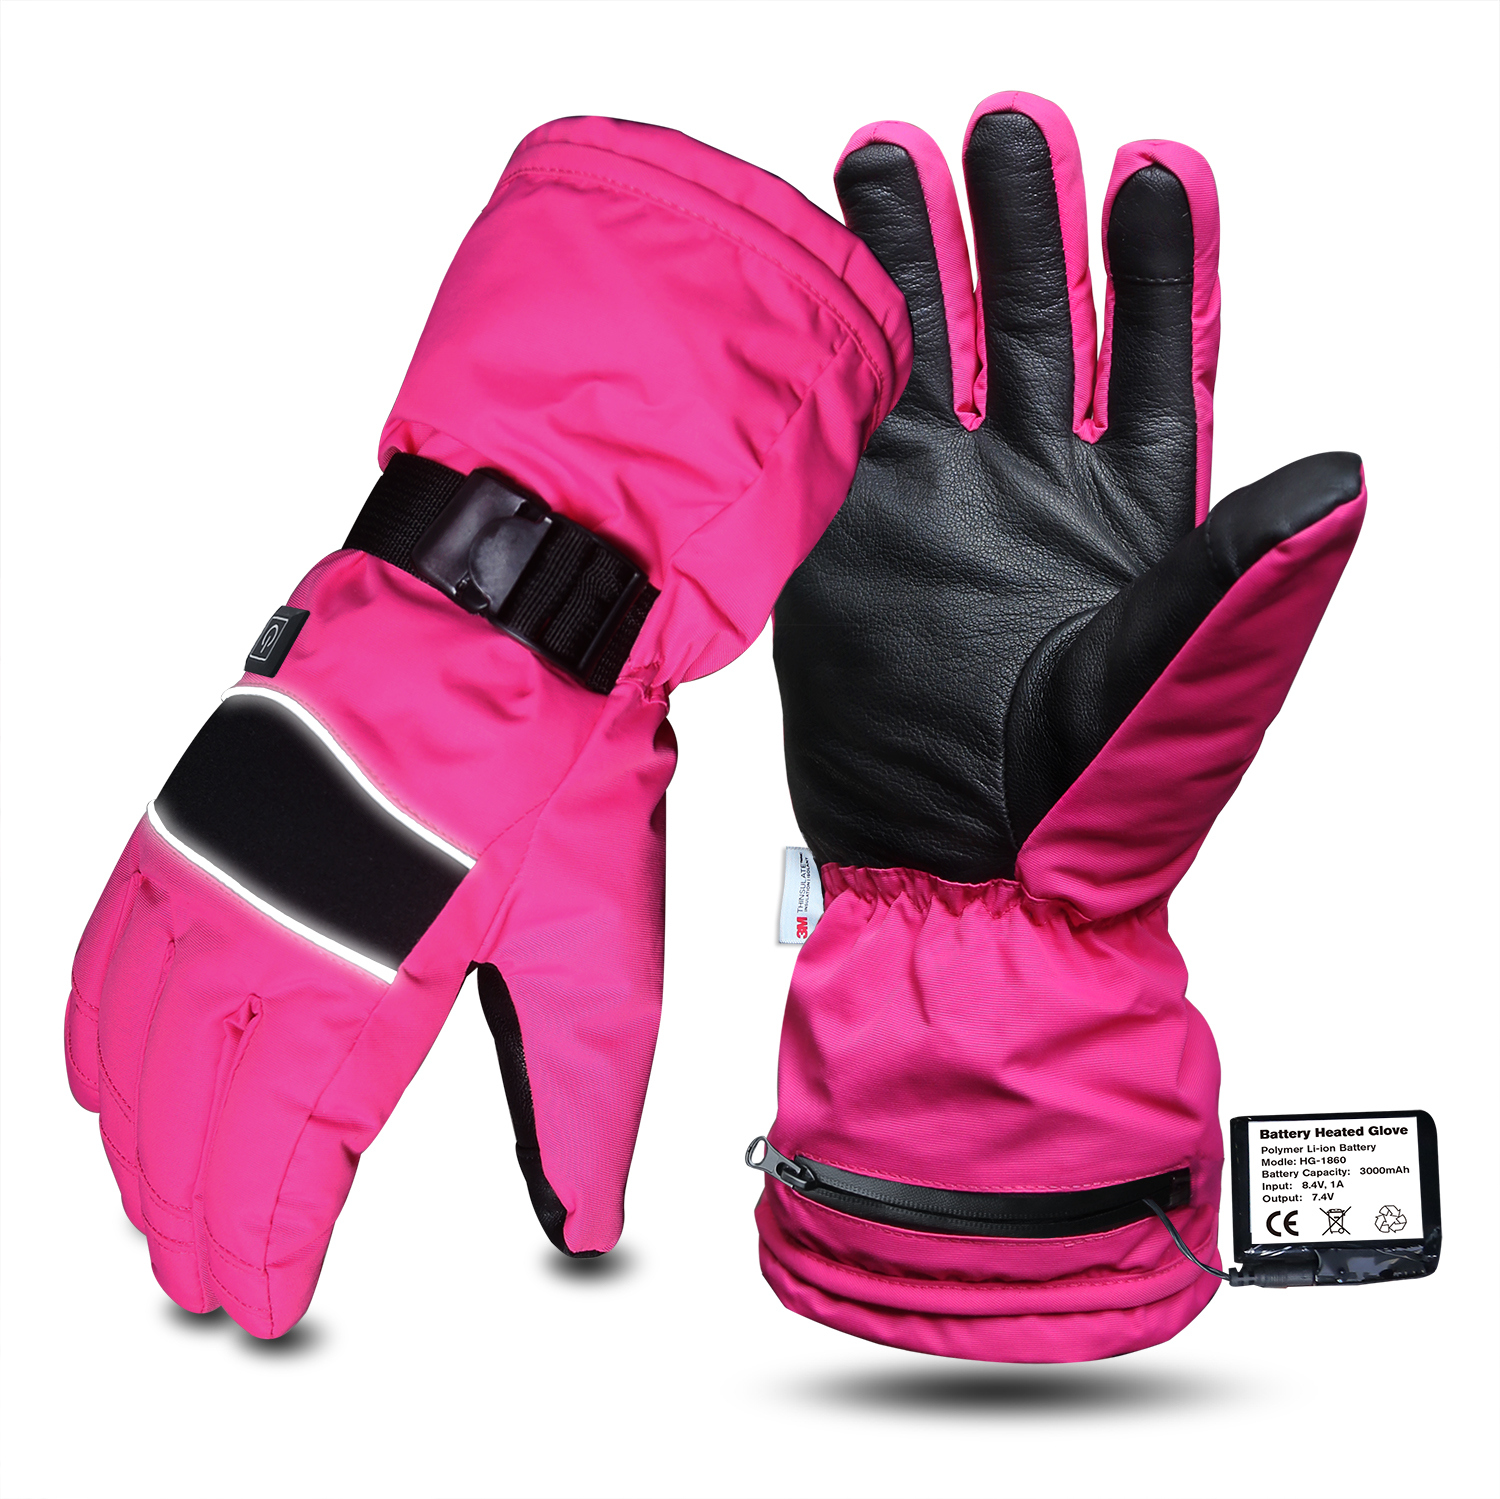 Motorcycle Glove Heating/EHG-004